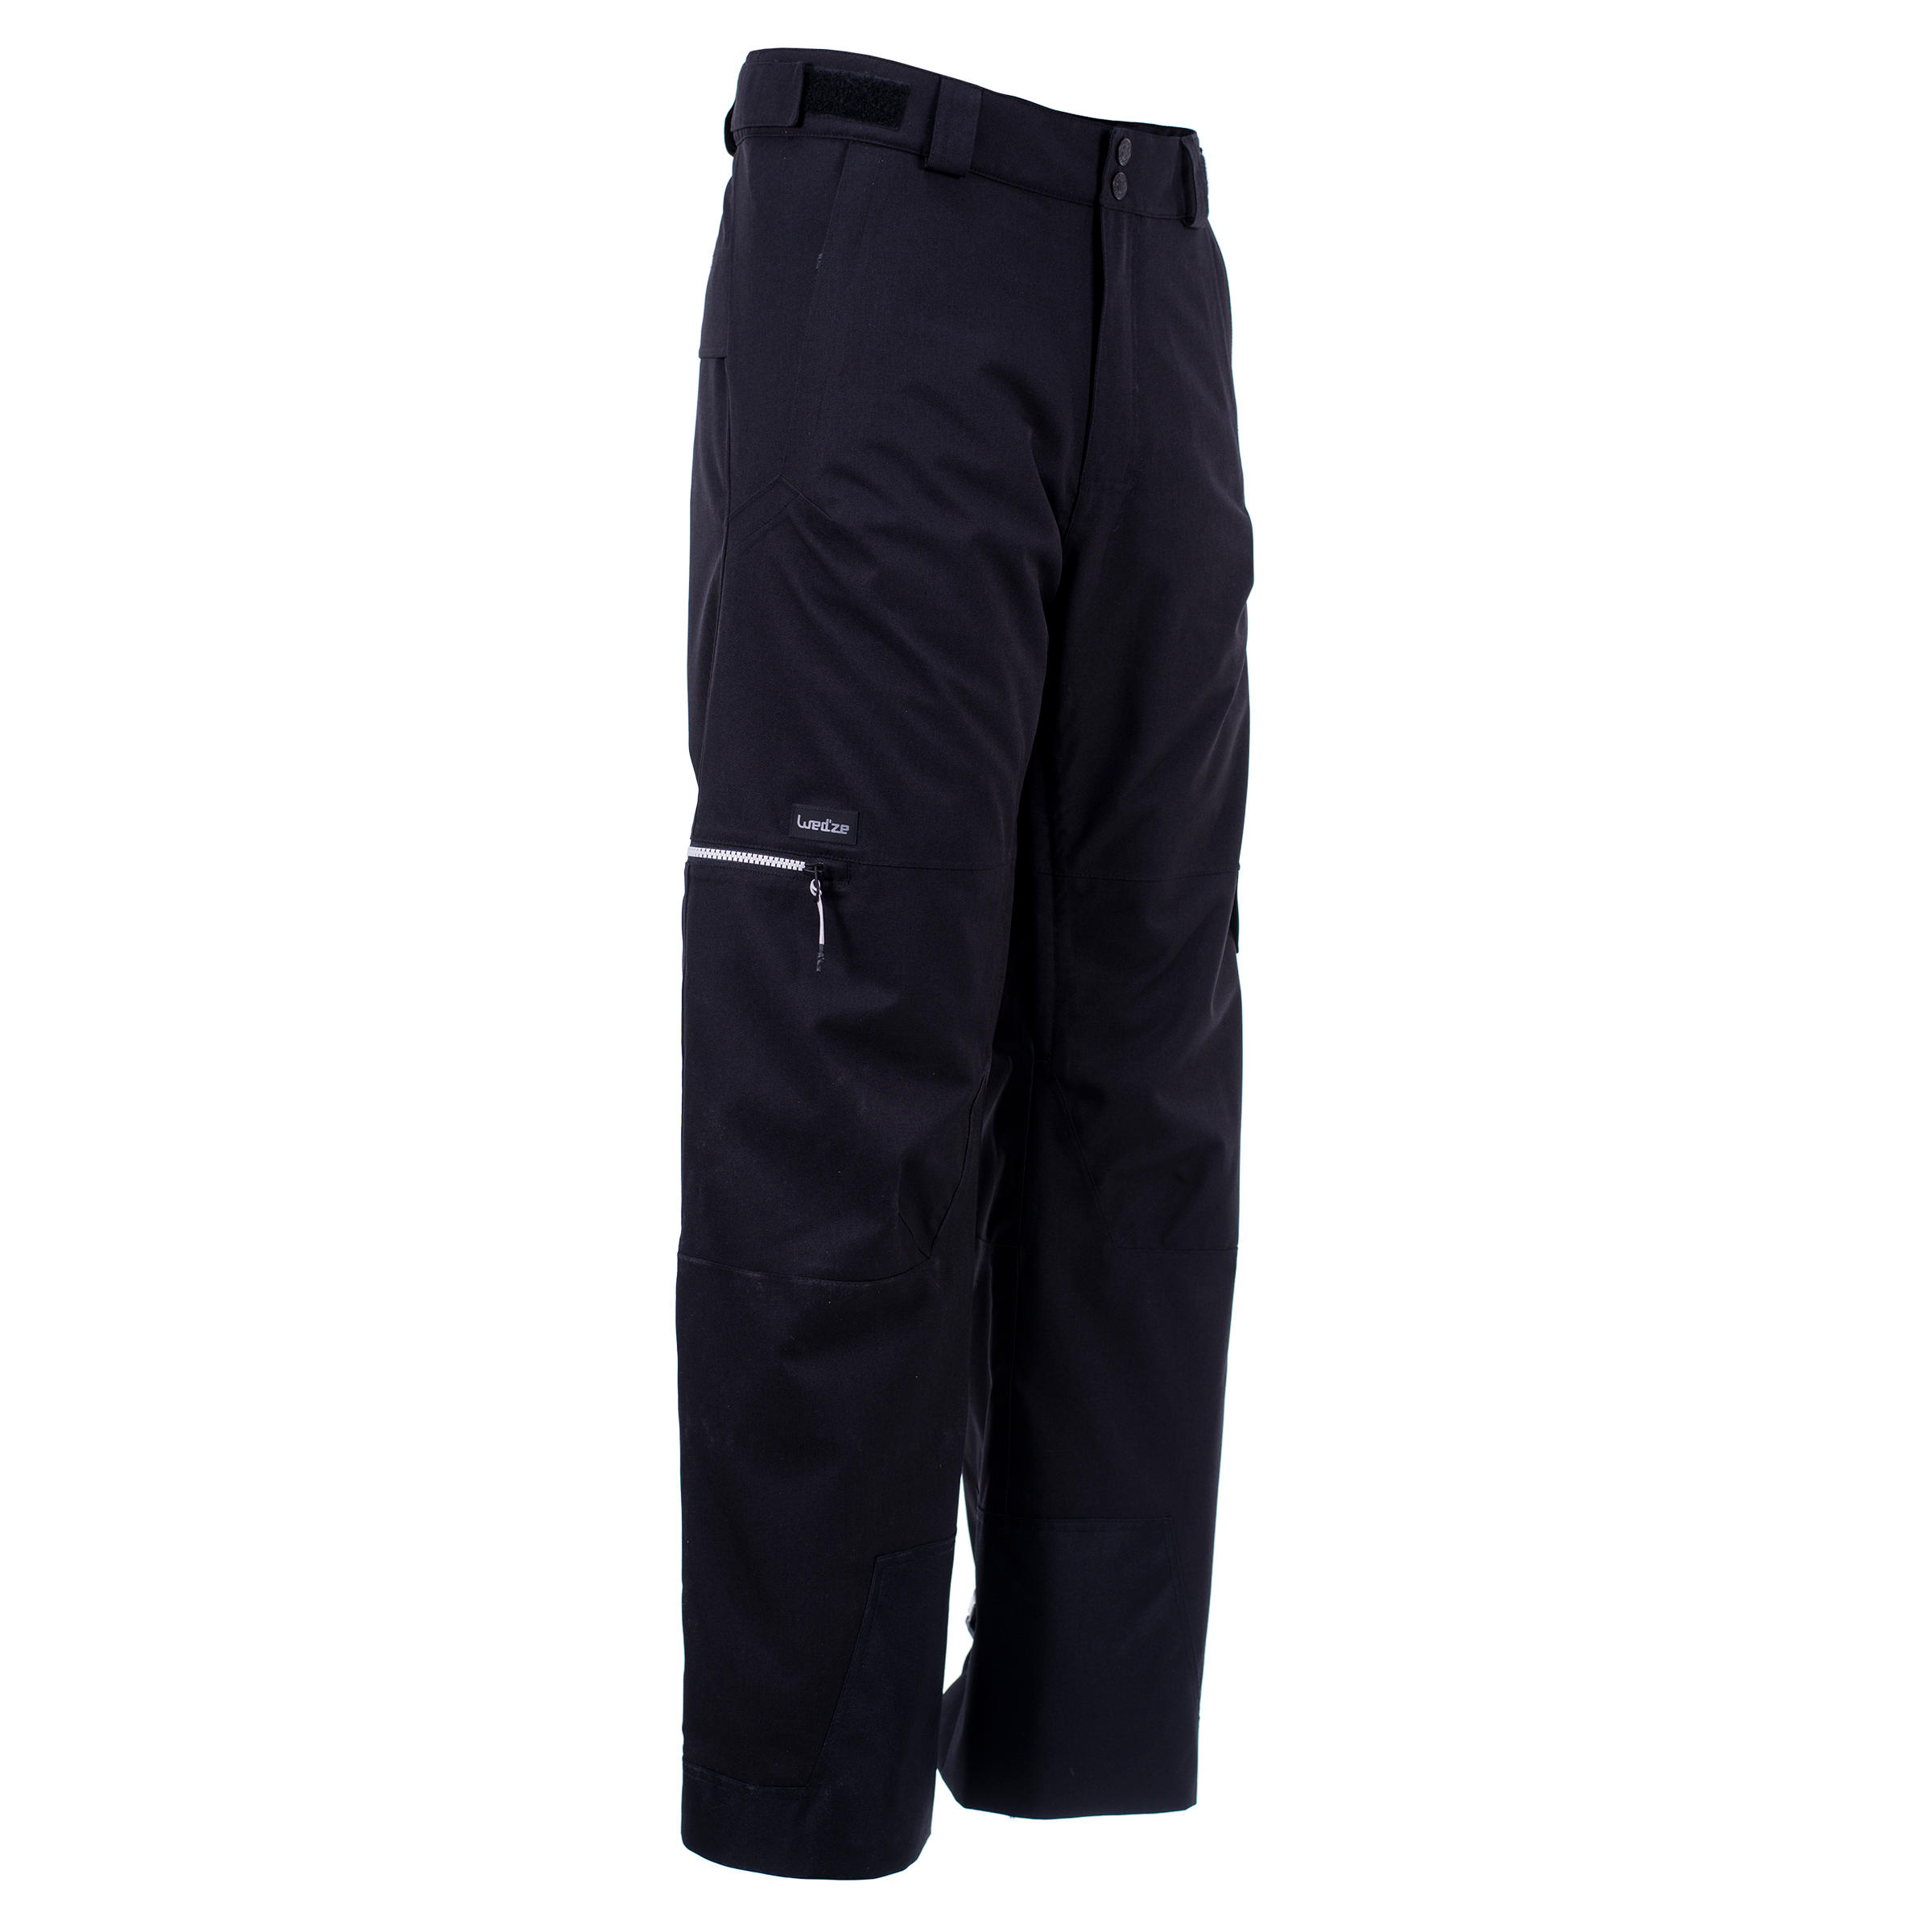 SNB PA 500 Men's Ski and Snowboard Pants - Black